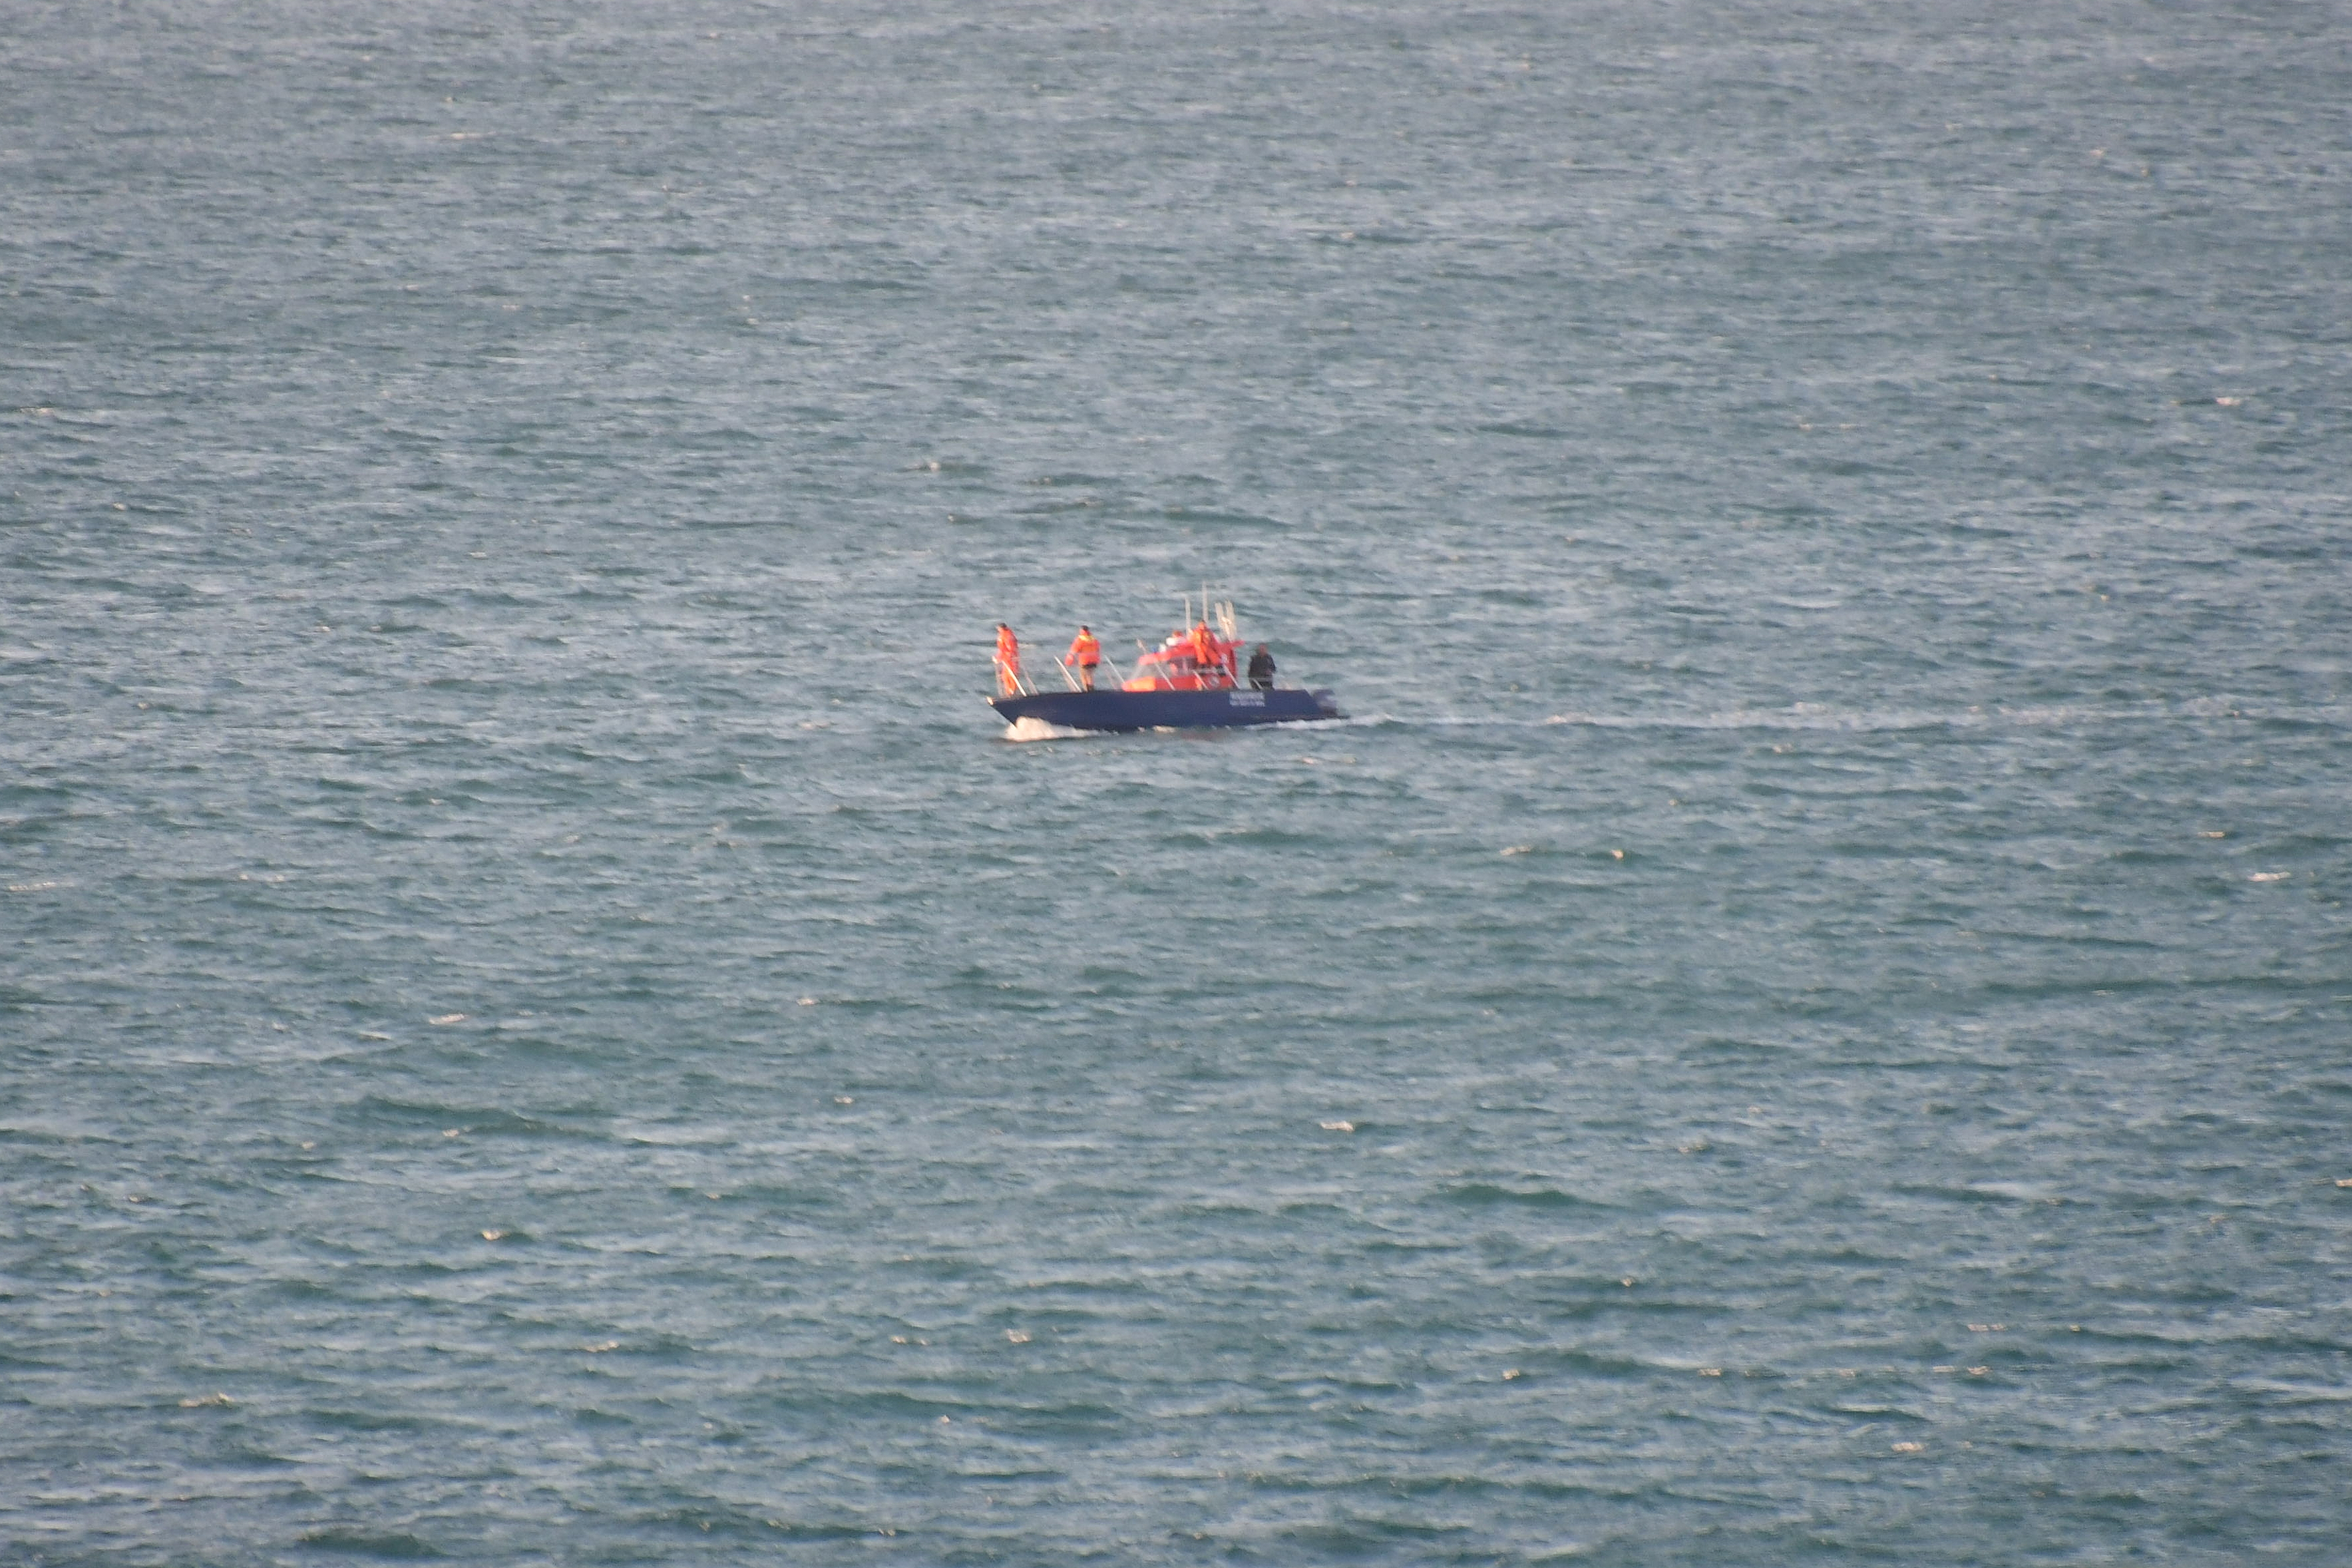 air sea rescue boat helicopter english channel granville manche normandy france eric hall